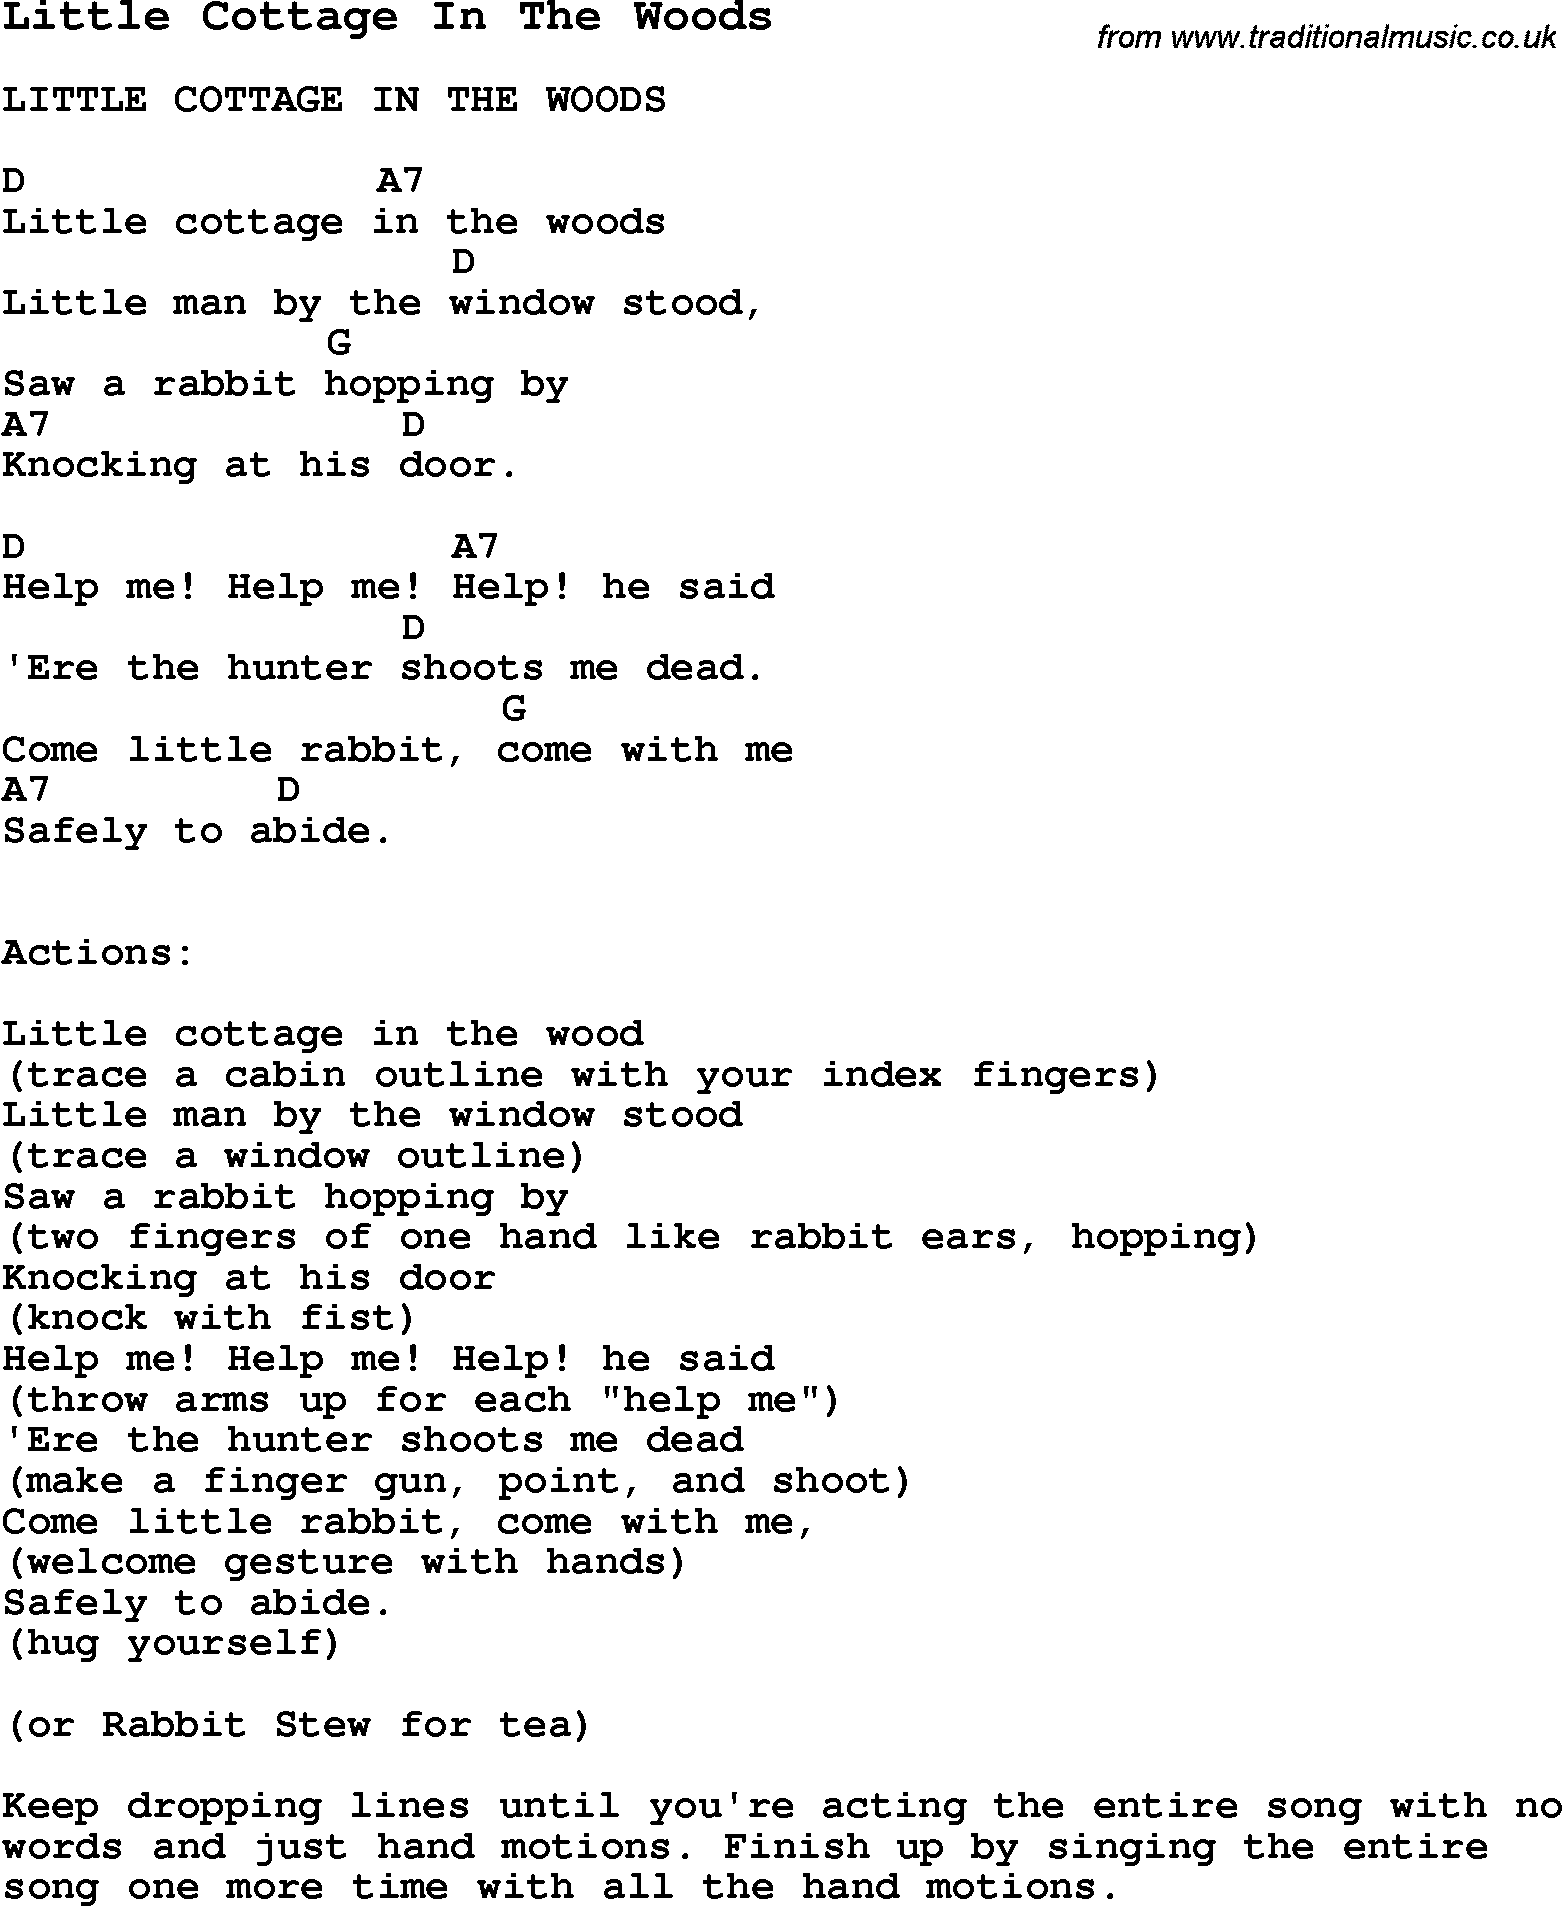 Summer Camp Song, Little Cottage In The Woods, with lyrics and